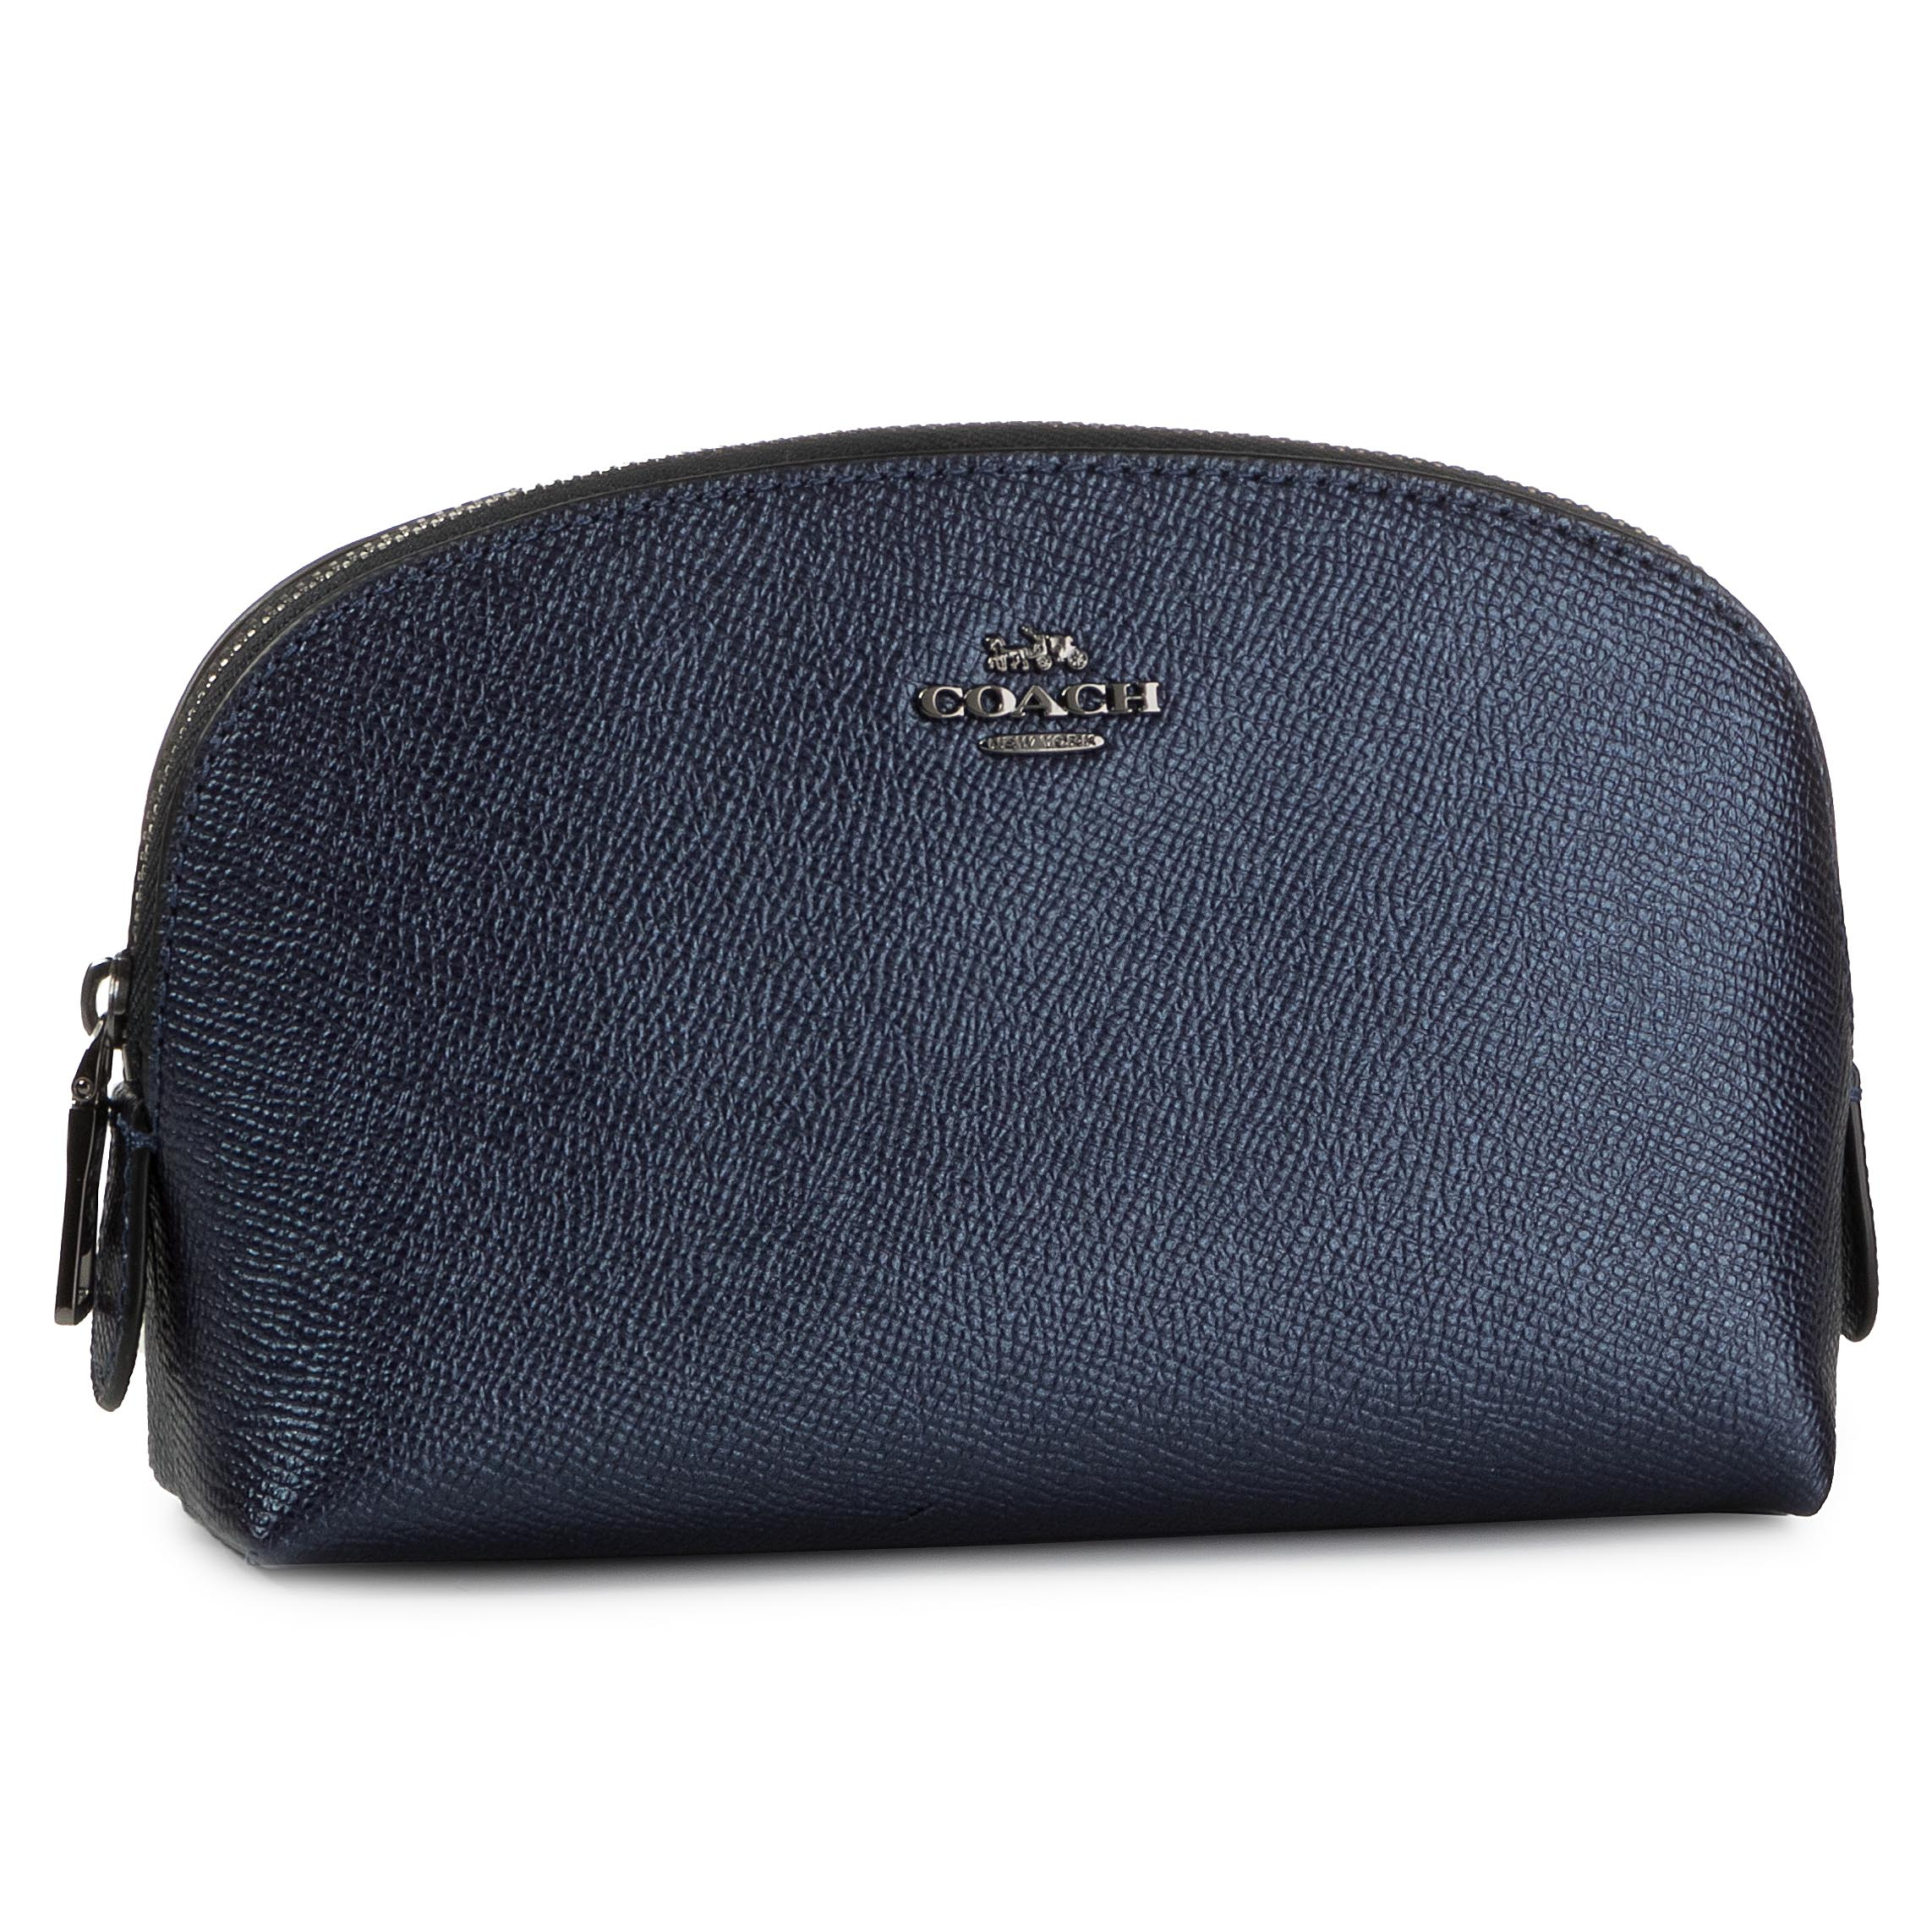 Geantă Pentru Cosmetice Coach - Metlc Cos Cse 17 59957 Gmeck Gm/Metallic Midnight Navy imagine epantofi.ro 2021